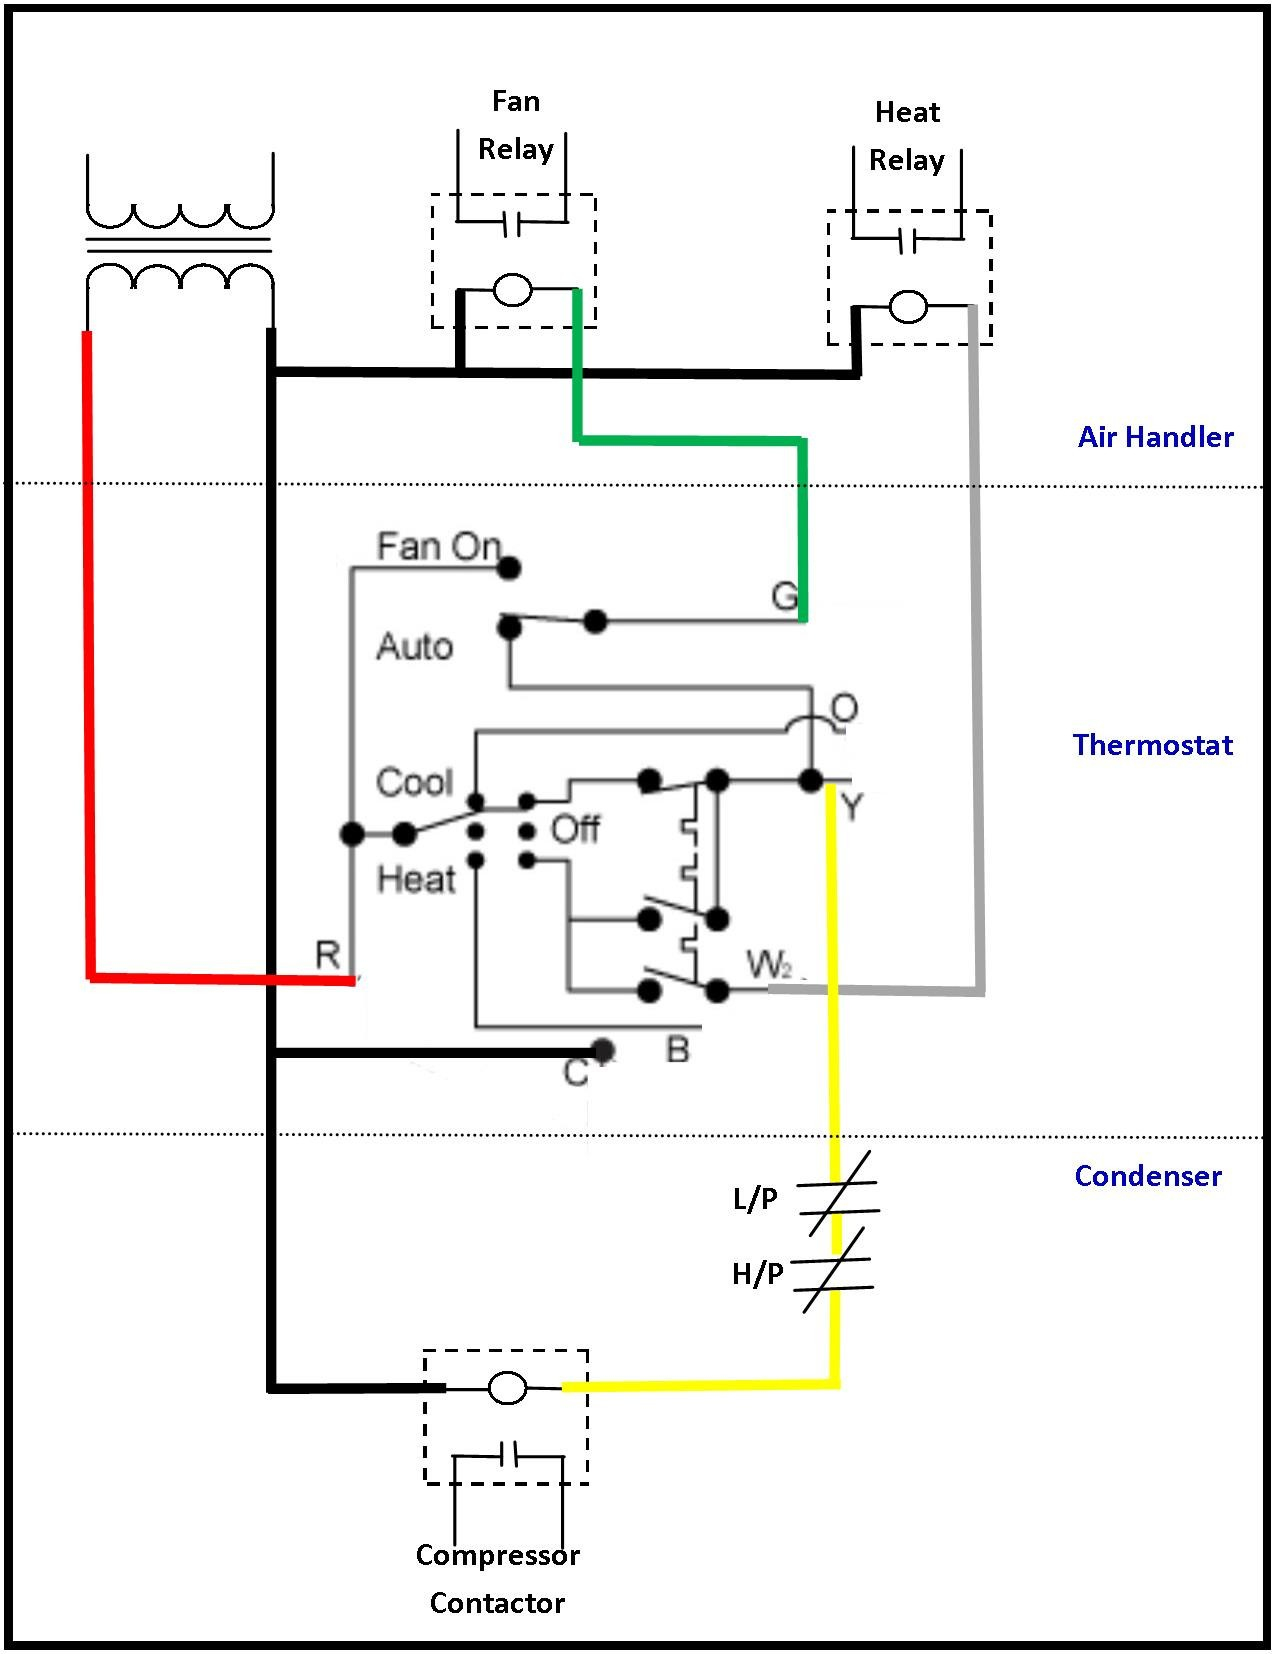 hvac thermostat wiring diagram download. Black Bedroom Furniture Sets. Home Design Ideas